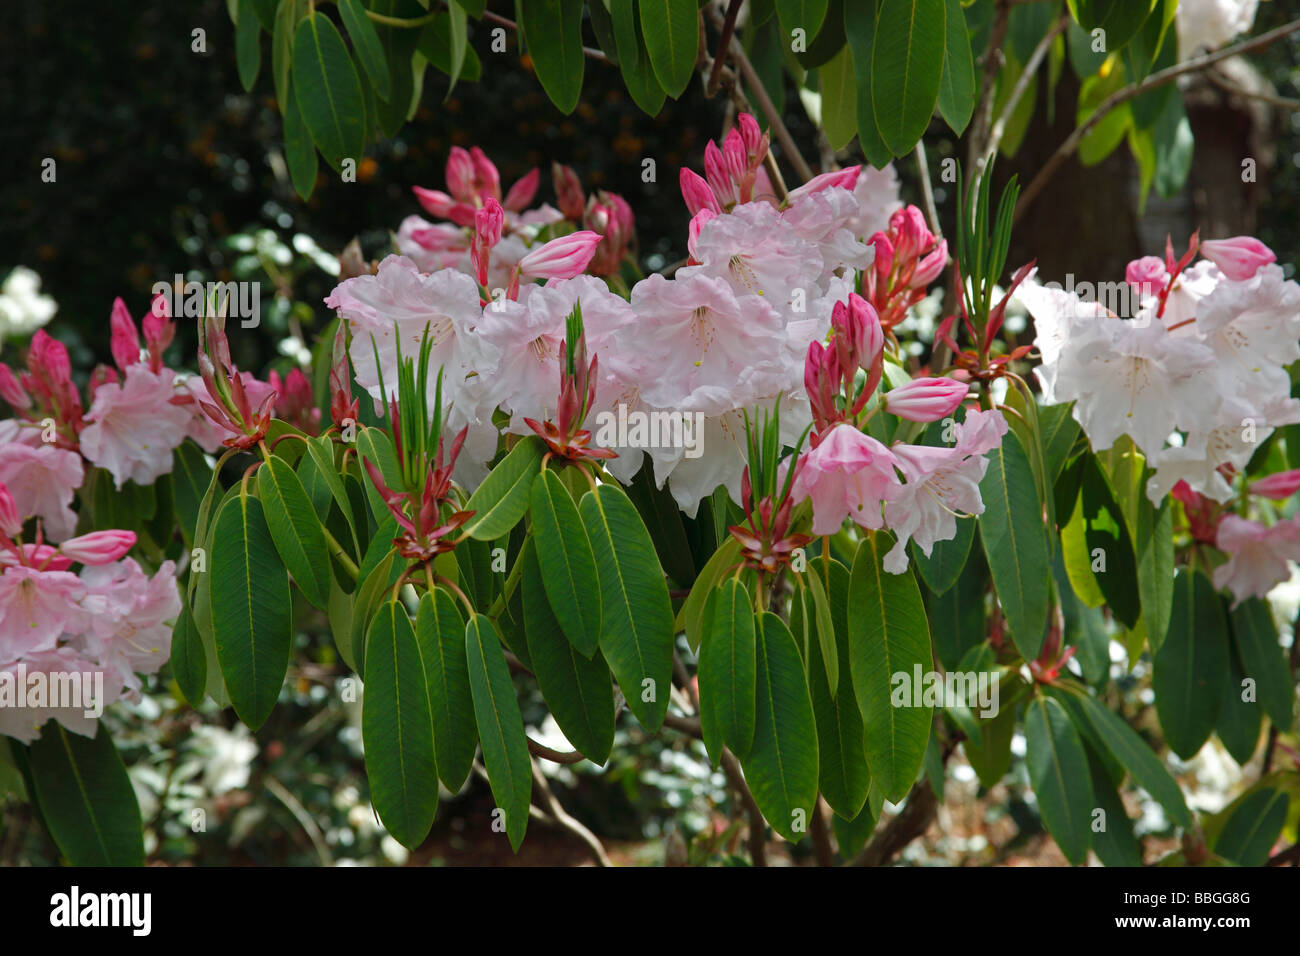 RHODODENDRON LODERI KING GEORGE CLOSE UP OF FLOWERS - Stock Image